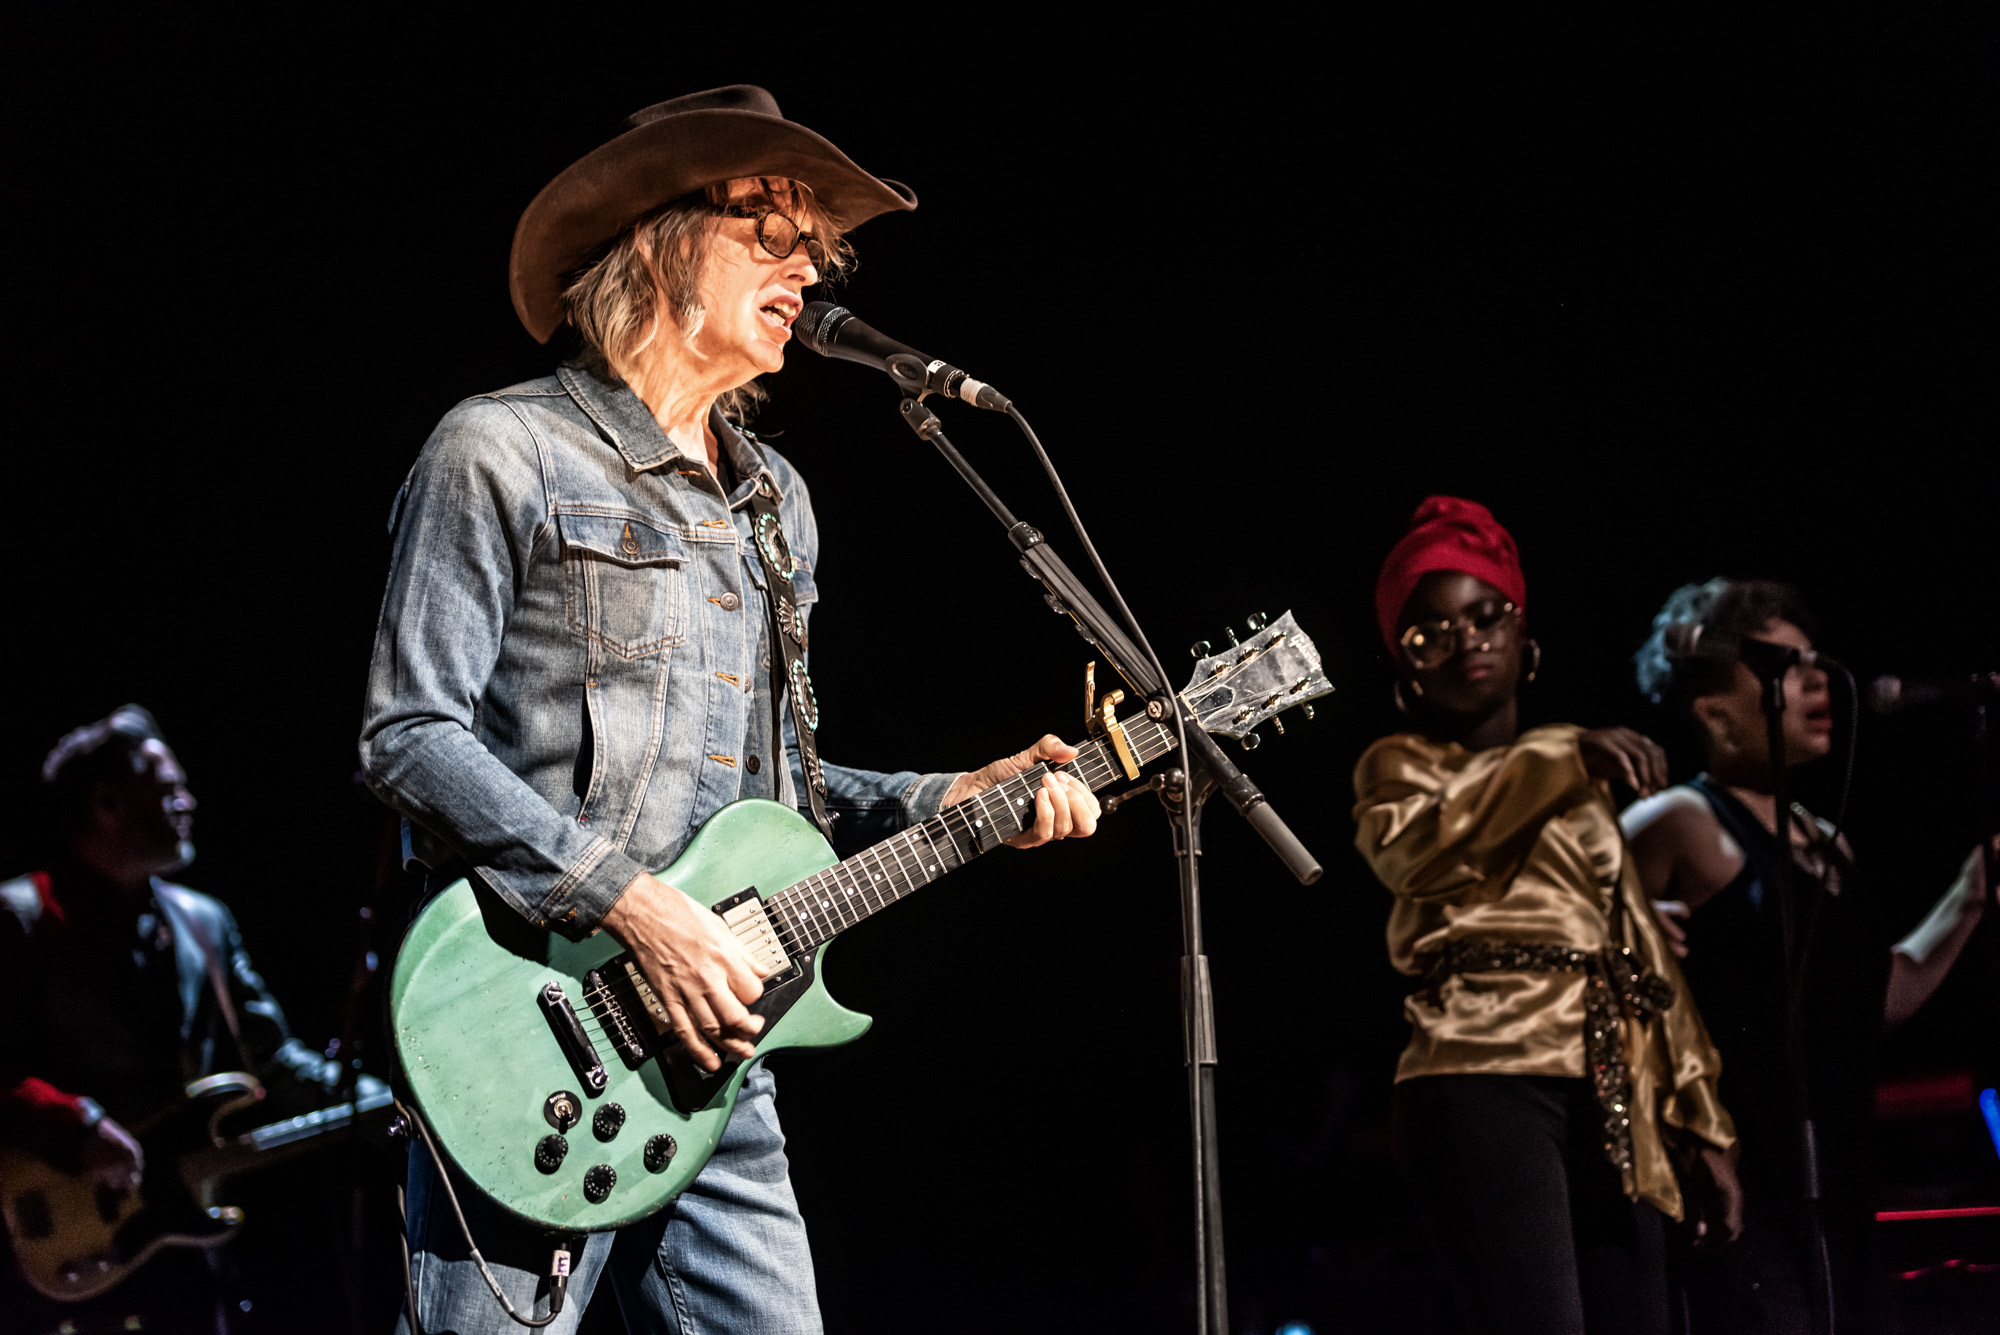 02112019_The_Waterboys__Forum__Oeyvind_Toft_49